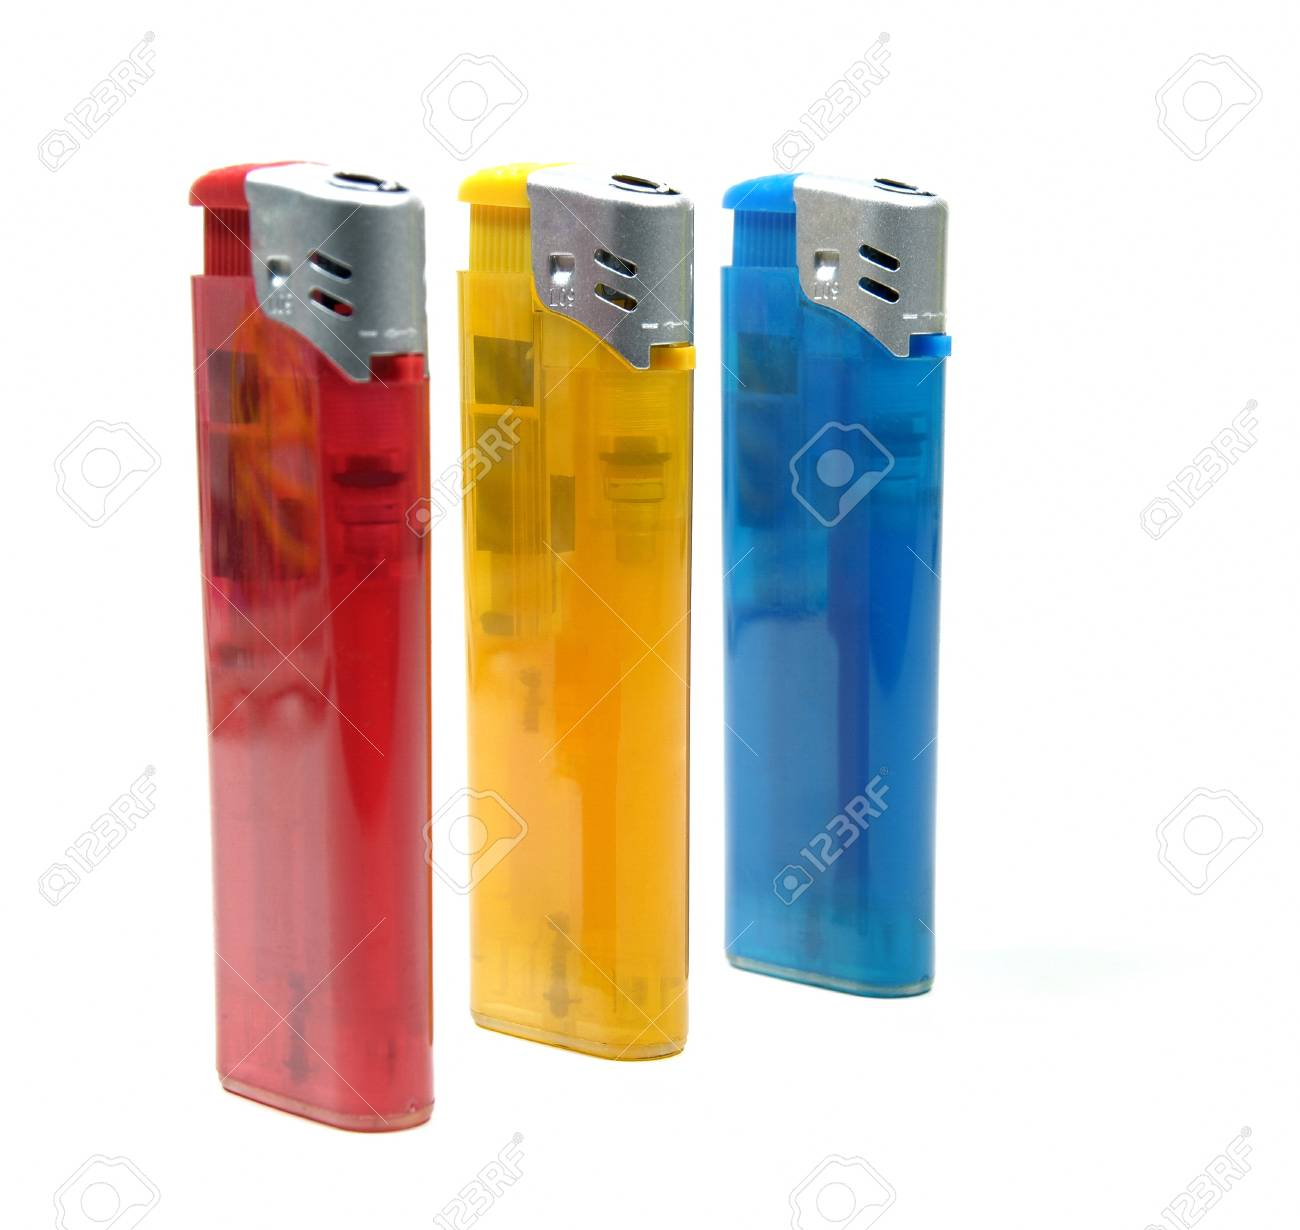 Three colorful lighters over white background Stock Photo - 8285908